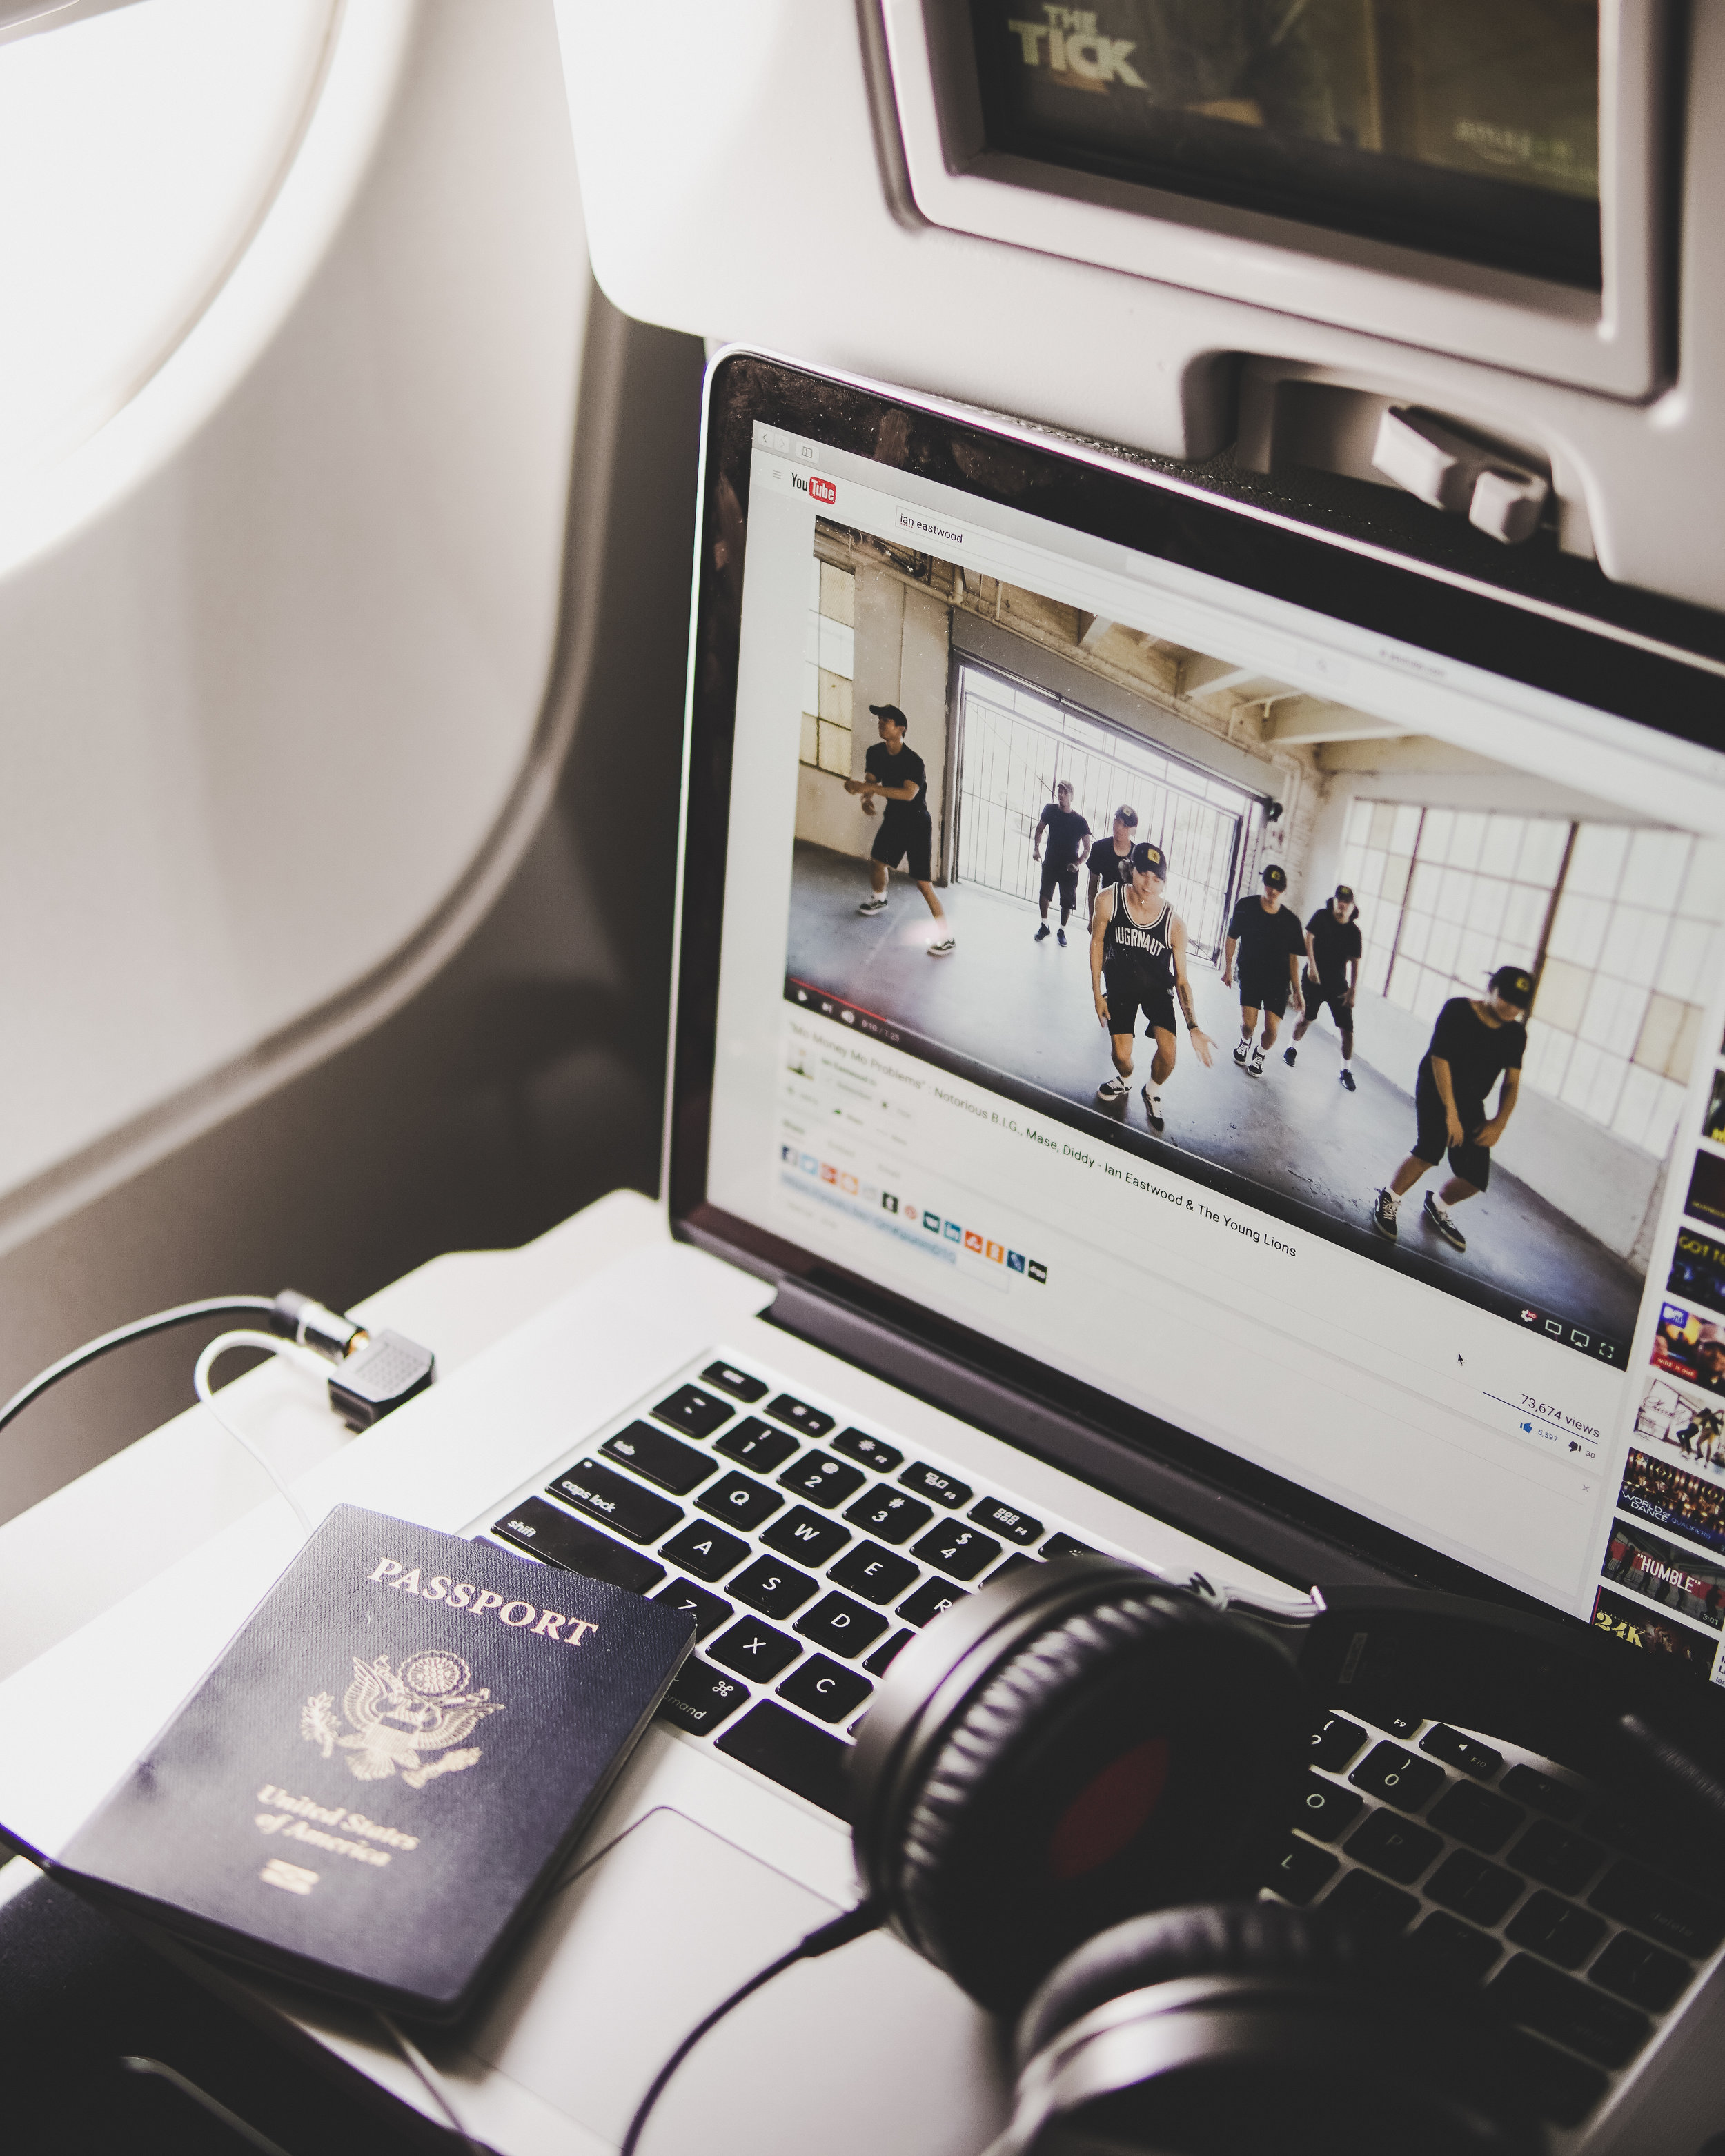 laptop with youtube video of people dancing a passport and headphones image